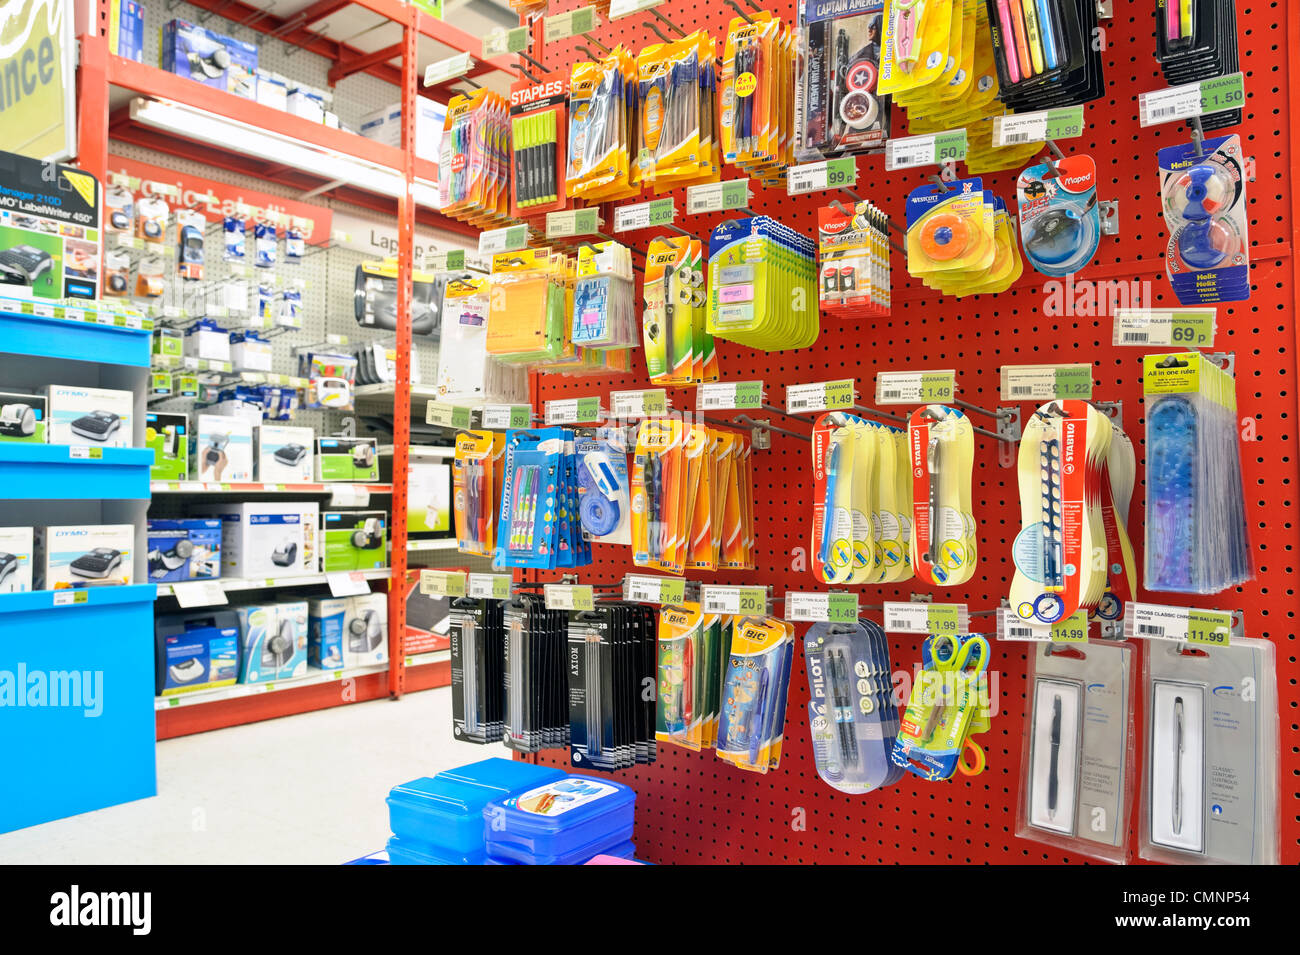 Office Stores Office Supplies Store Stock Photos Office Supplies Store Stock